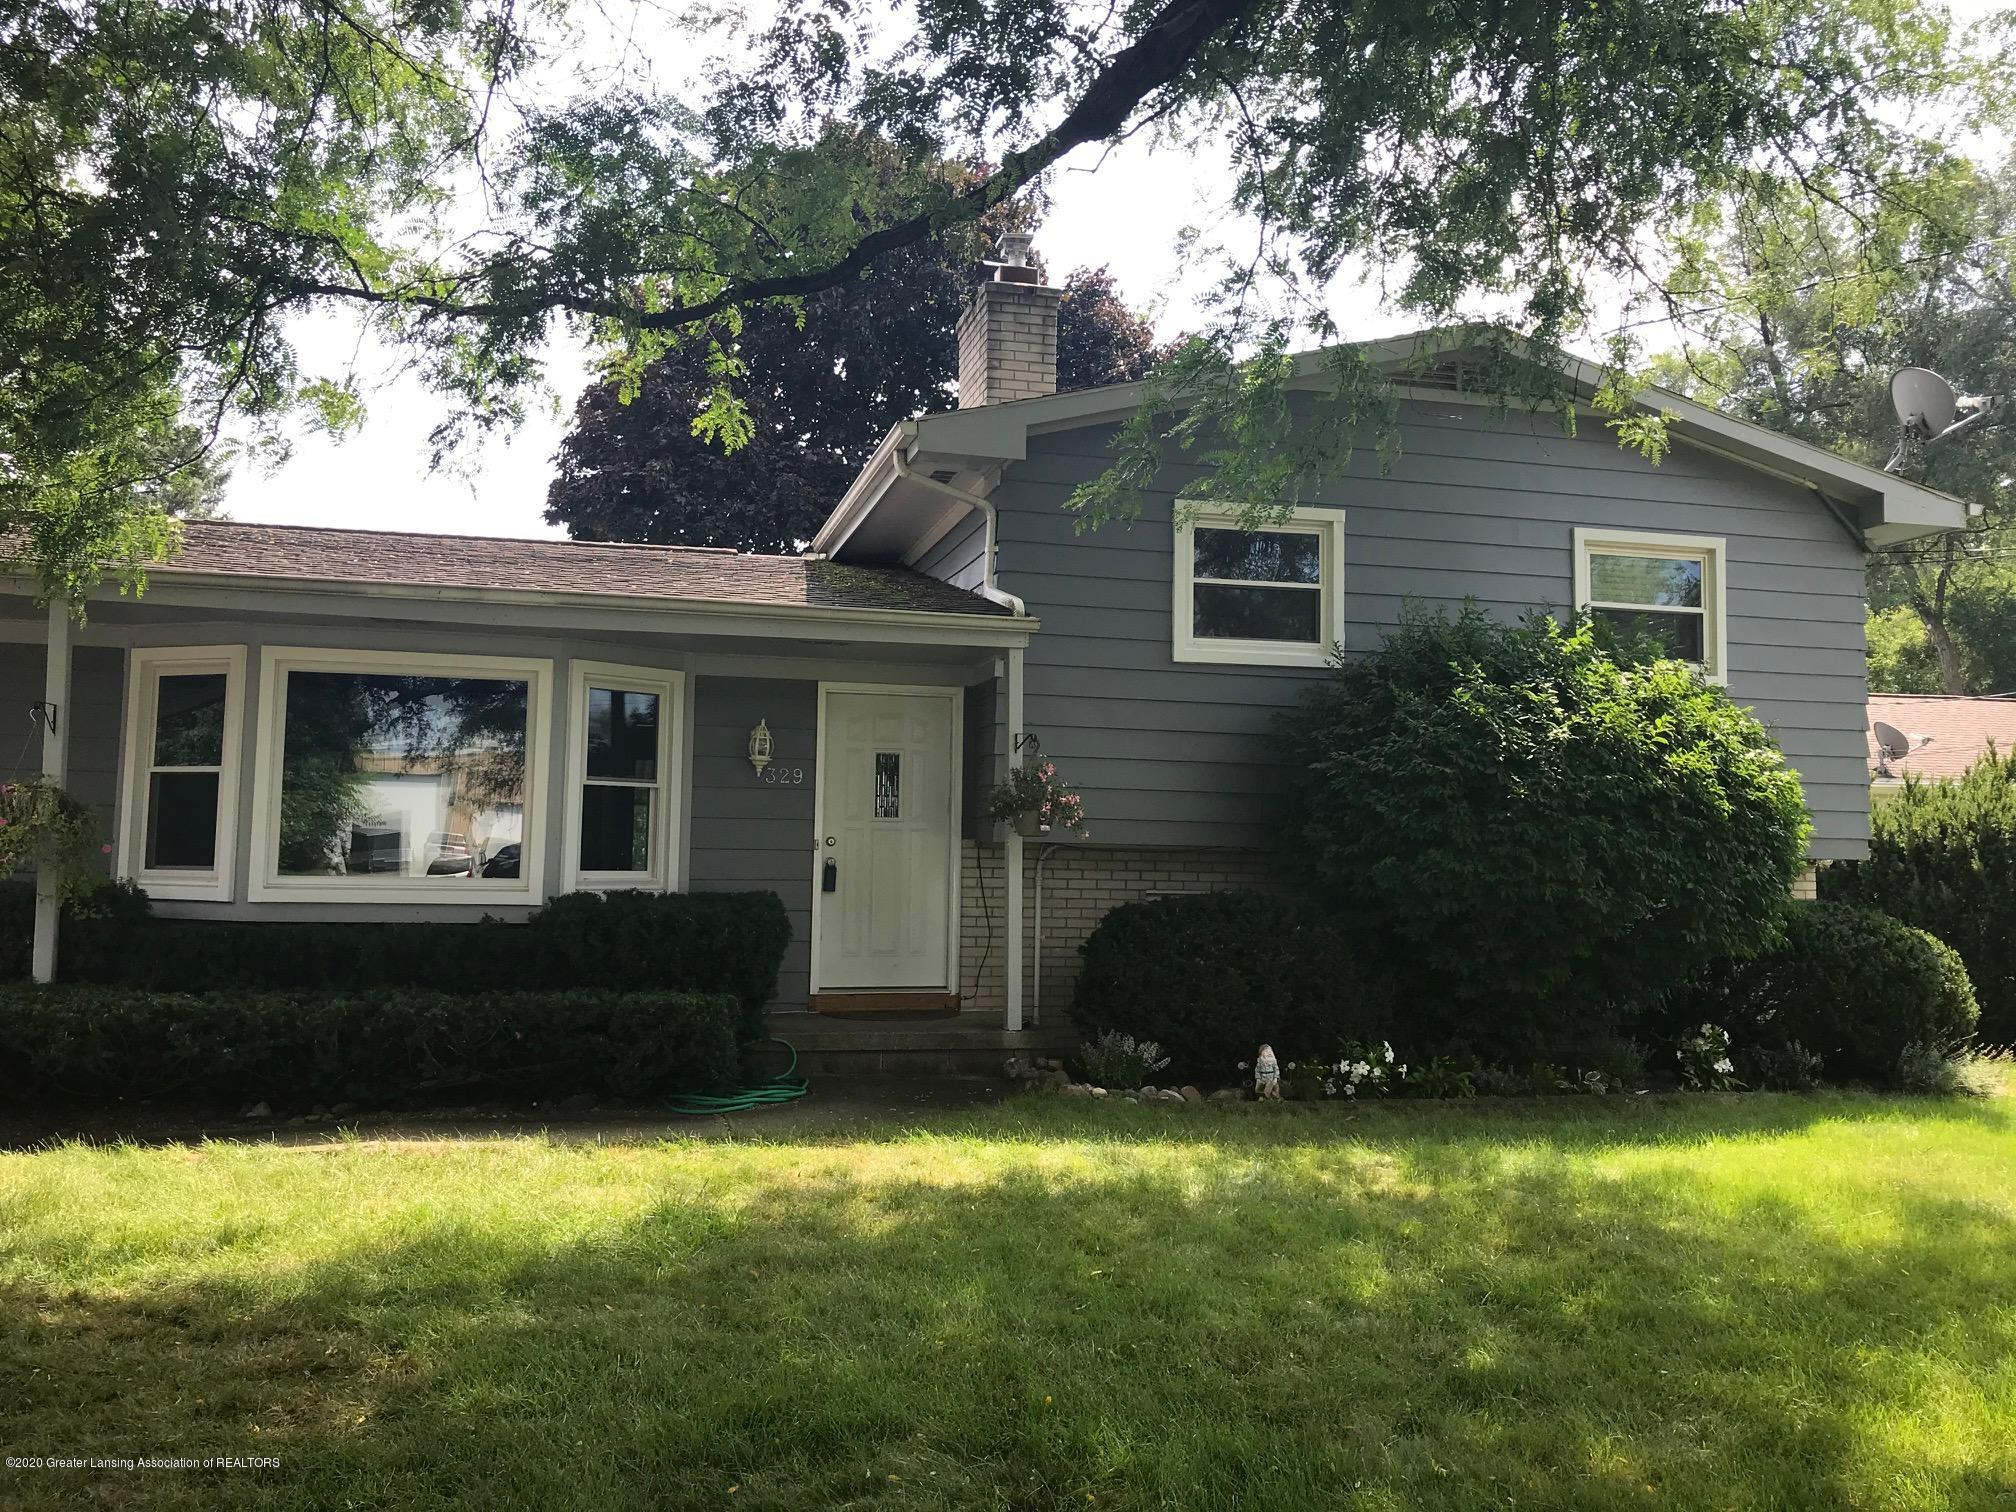 329 Clement Rd - image0 - 1